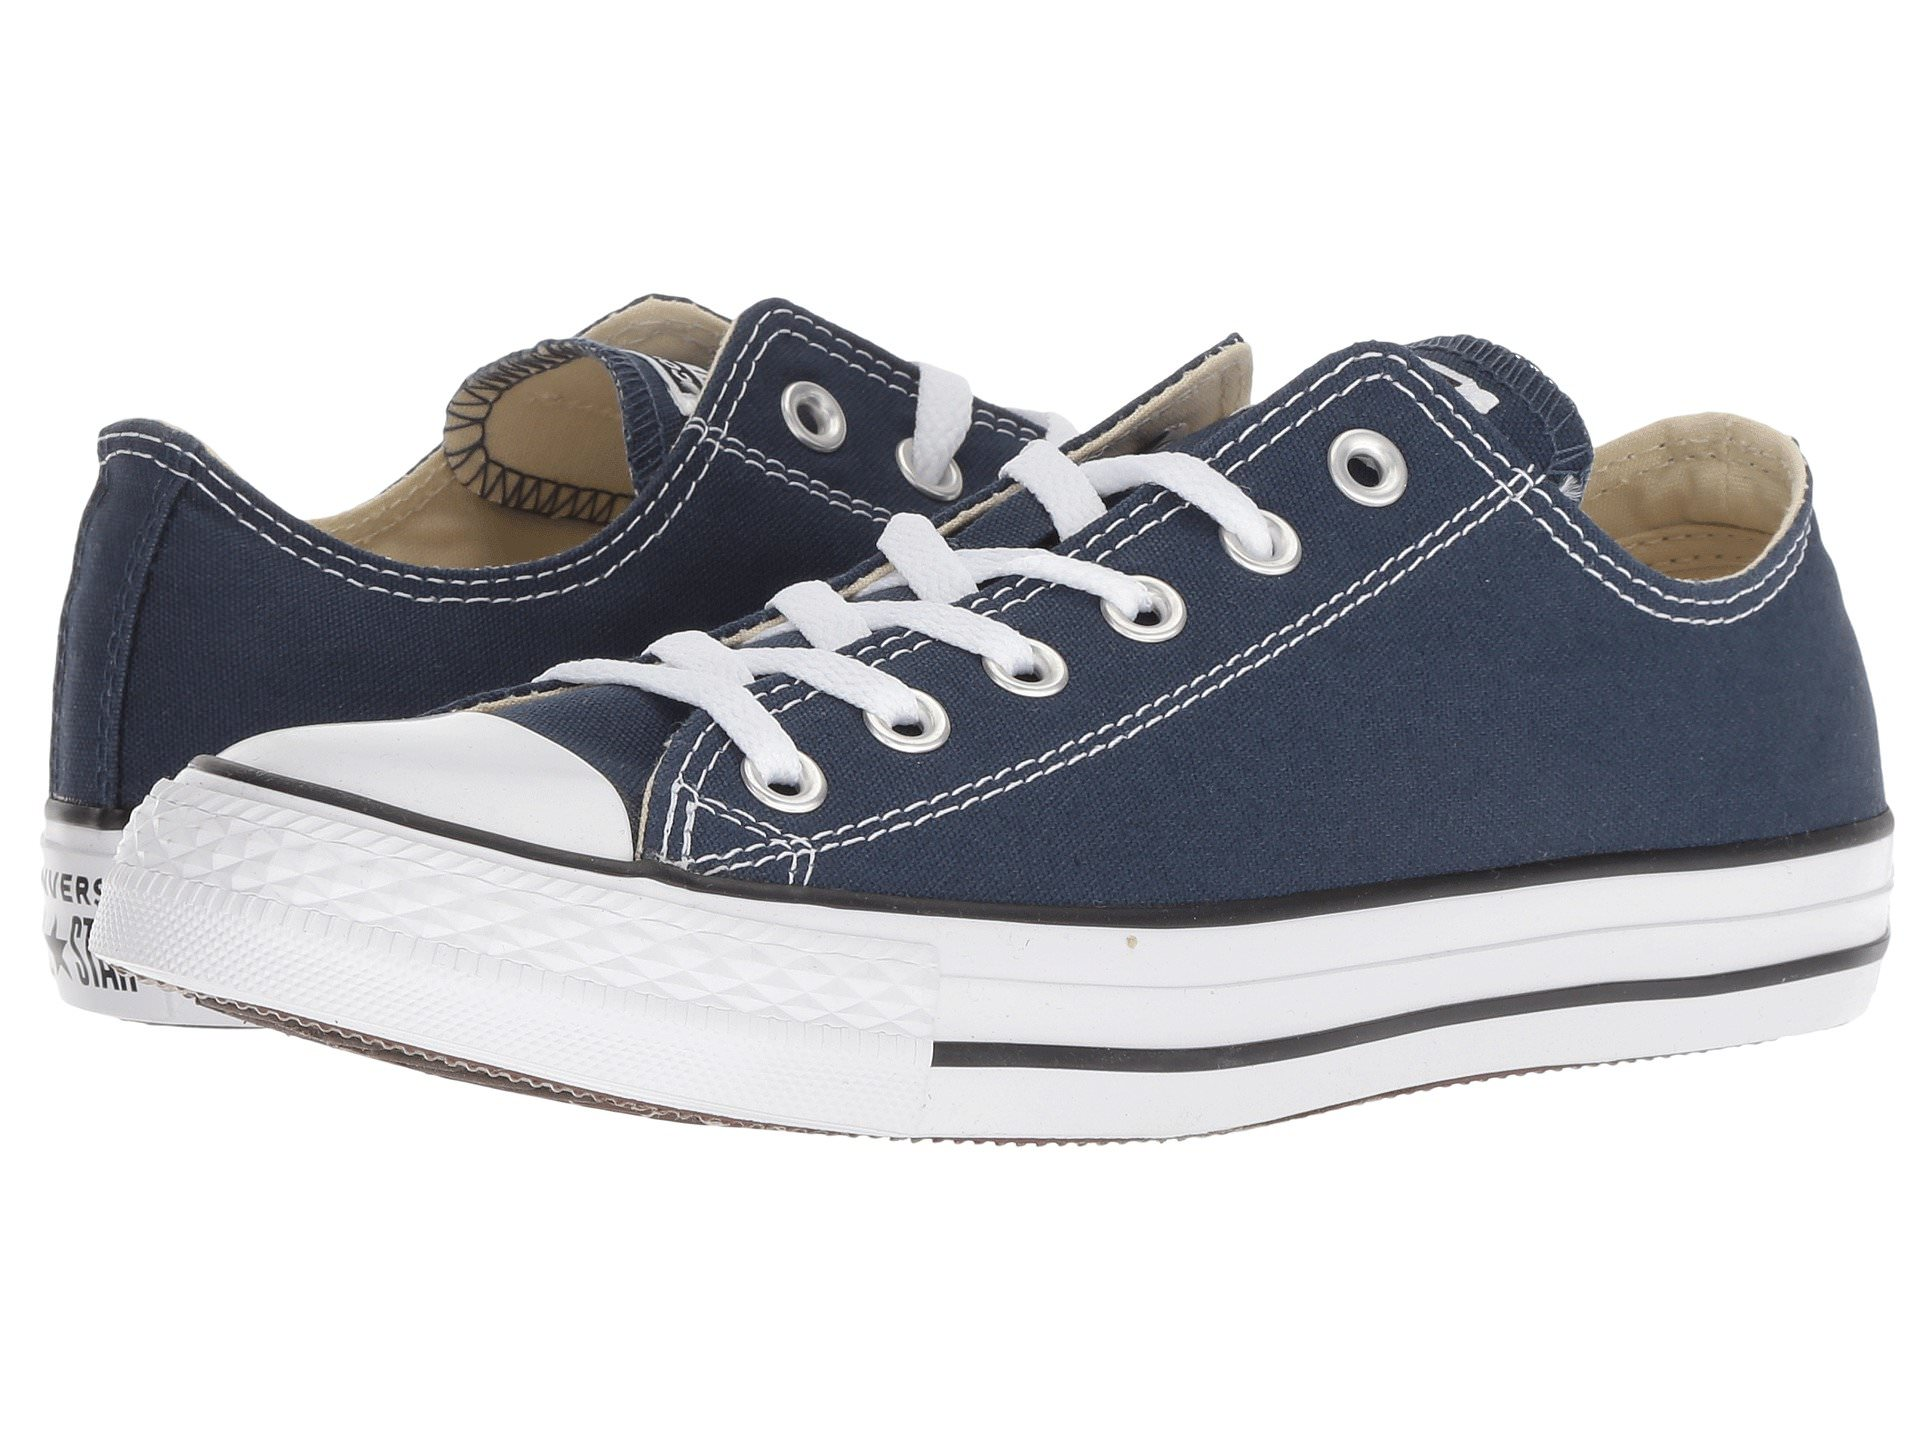 22b30190ae0 Converse CHUCK TAYLOR ALL STAR OX Unisex Navy Canvas Sneaker Shoes ...